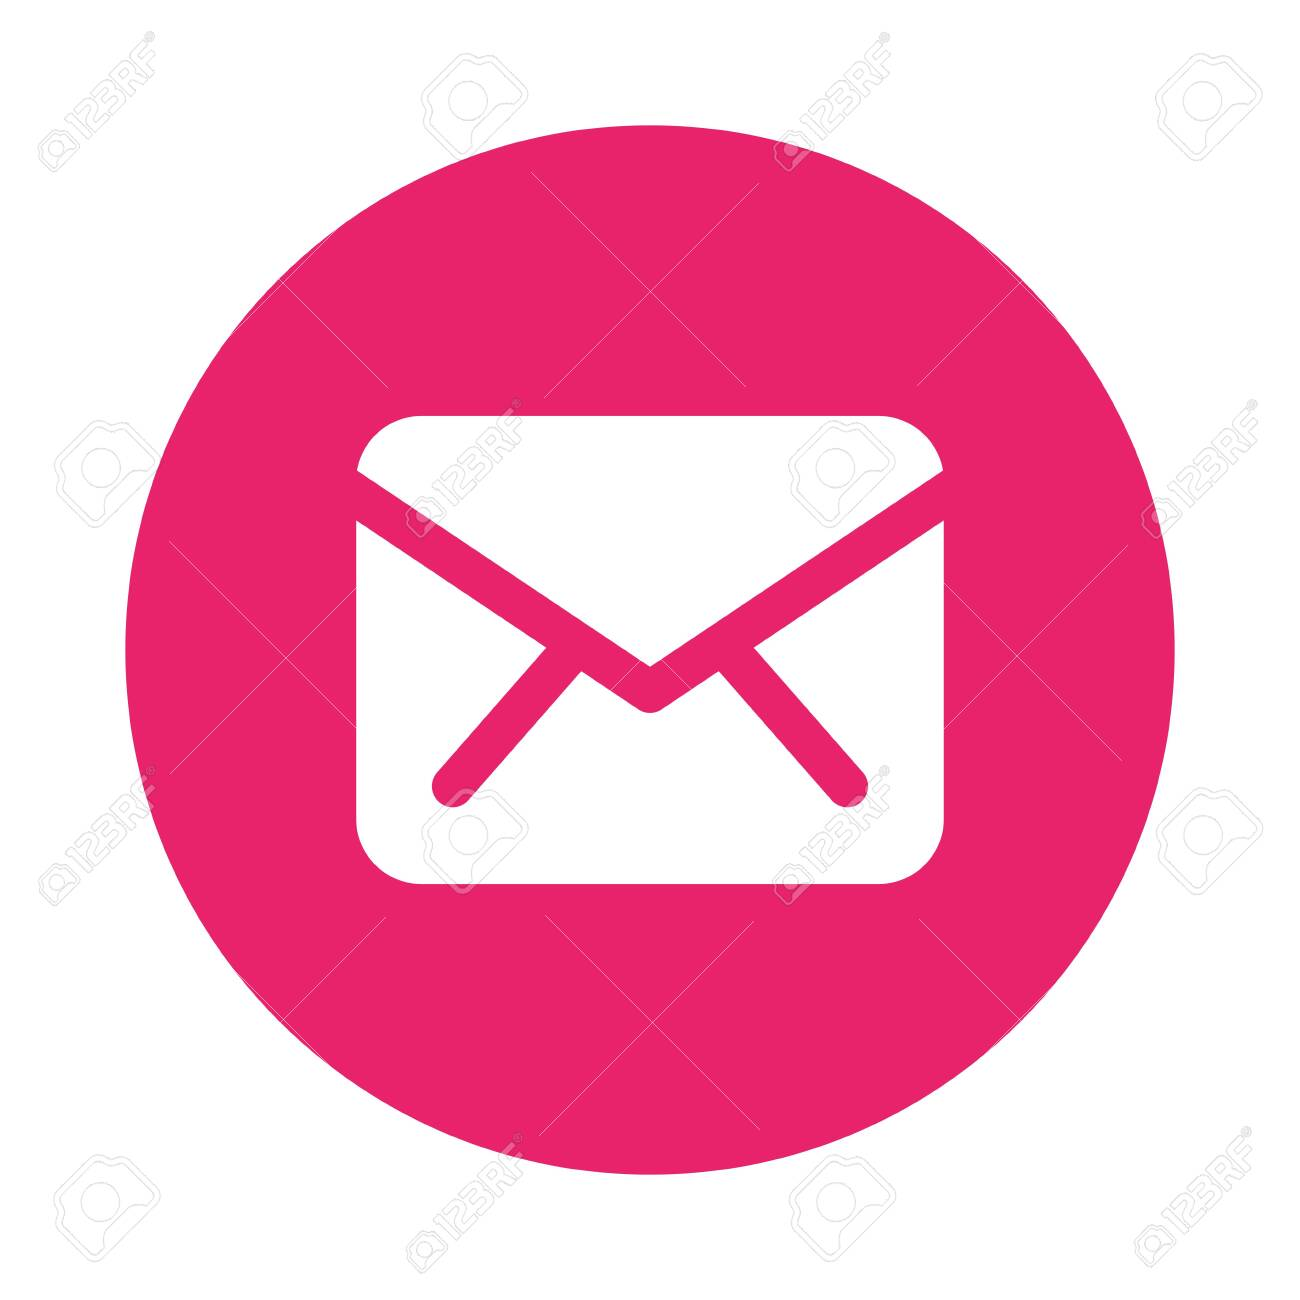 envelope mail send isolated icon vector illustration design - 142027415